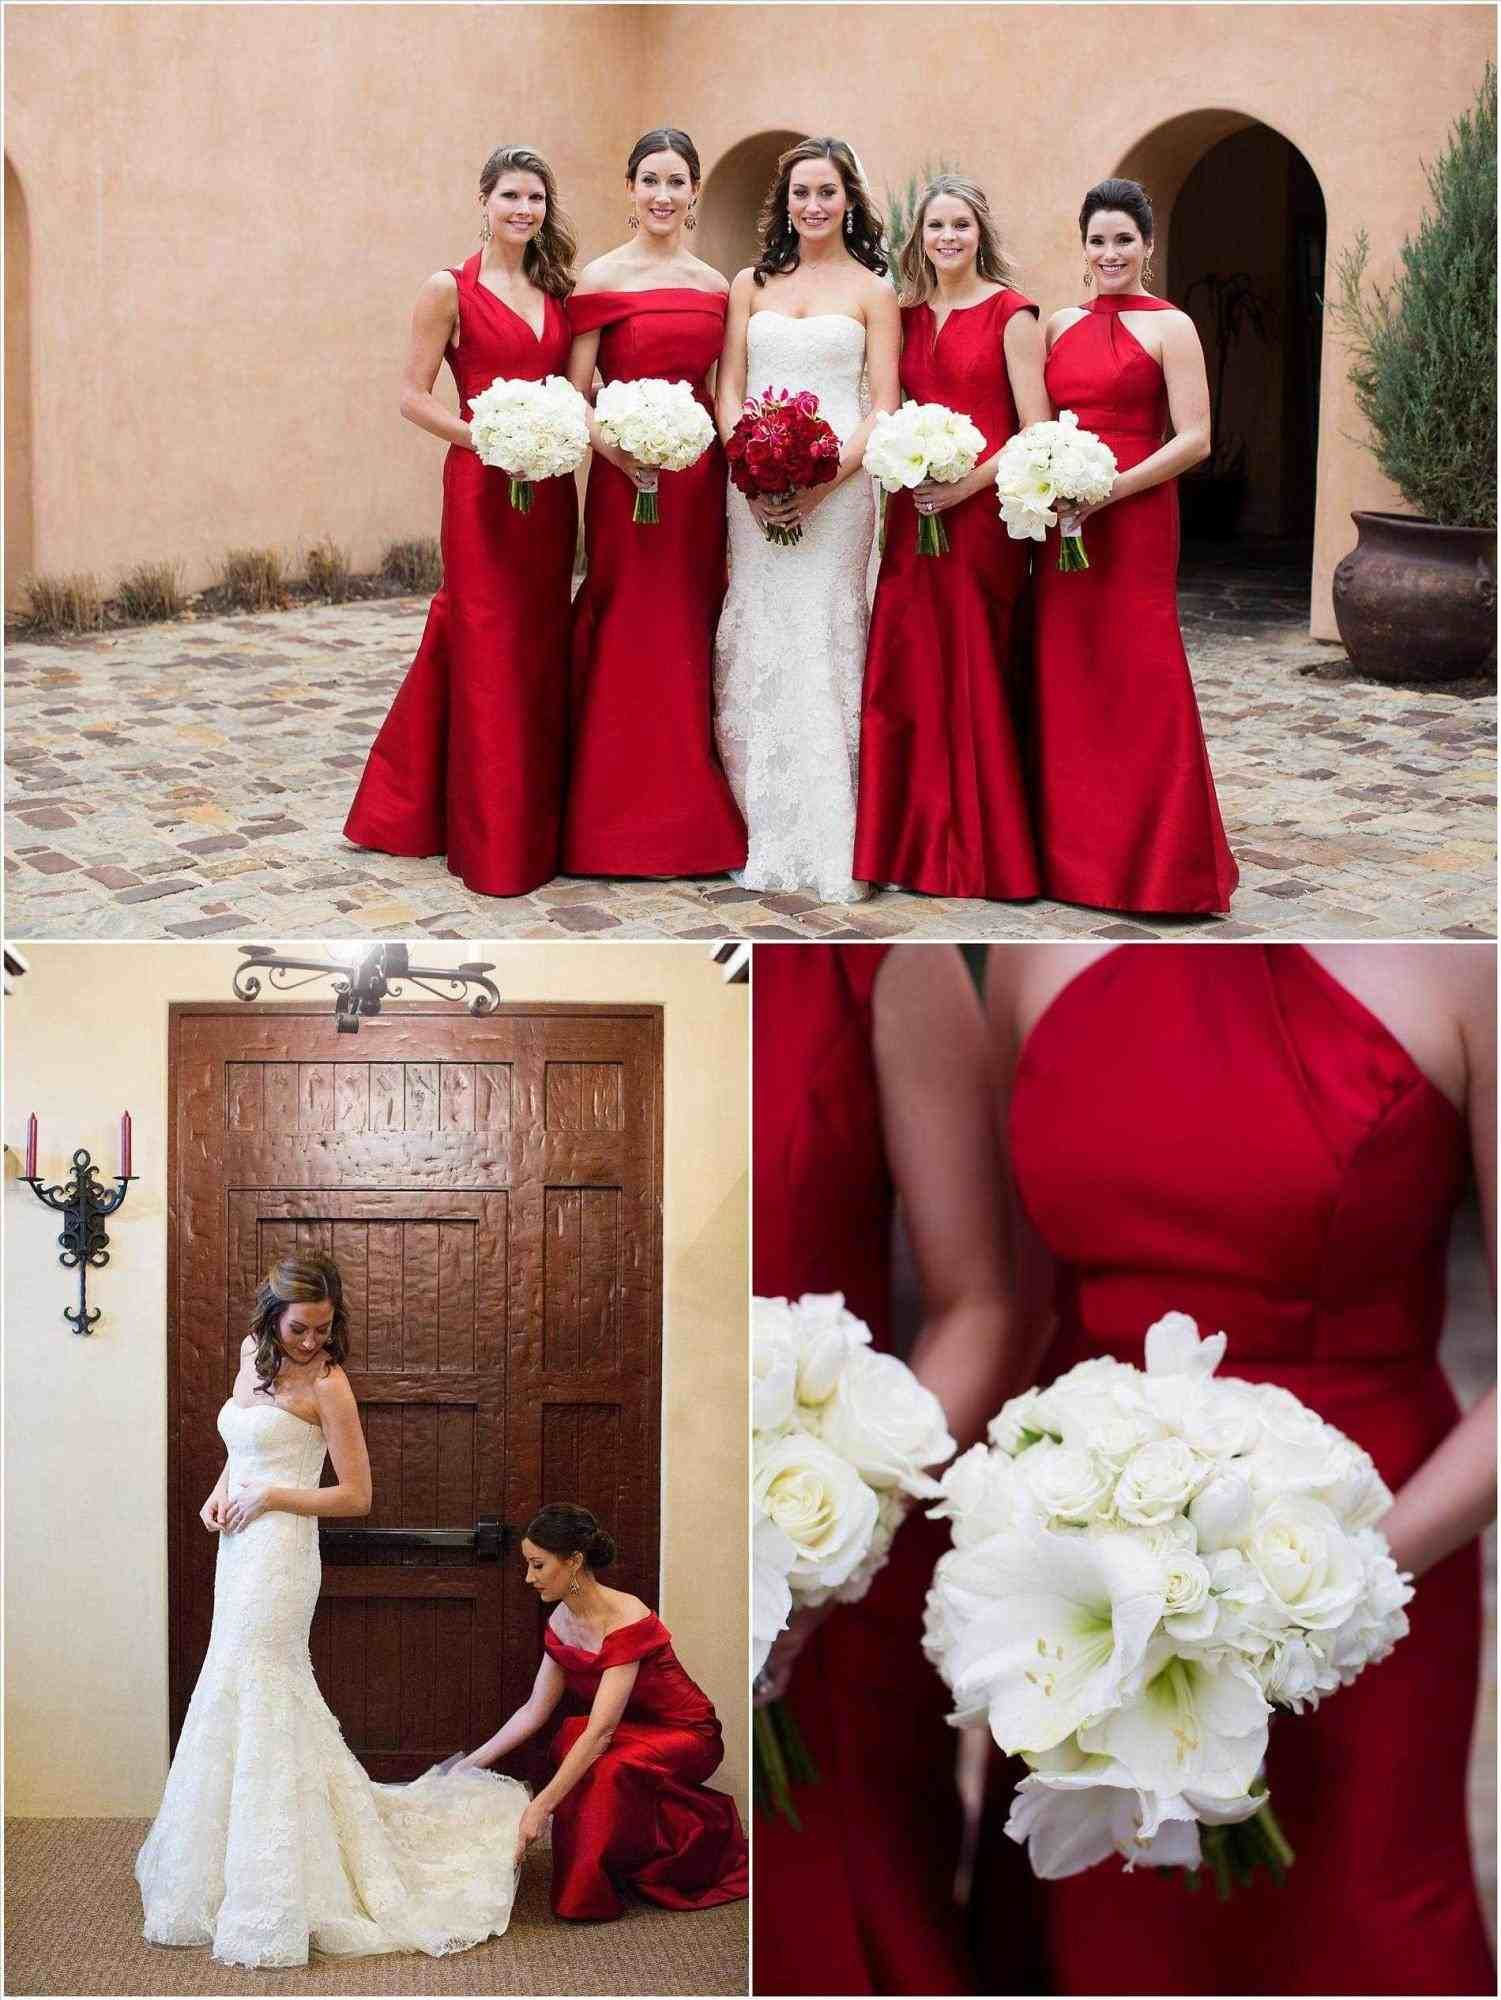 Top 10 New Post Black And White Wedding Theme With Red Accent Visit Wedbridal Site